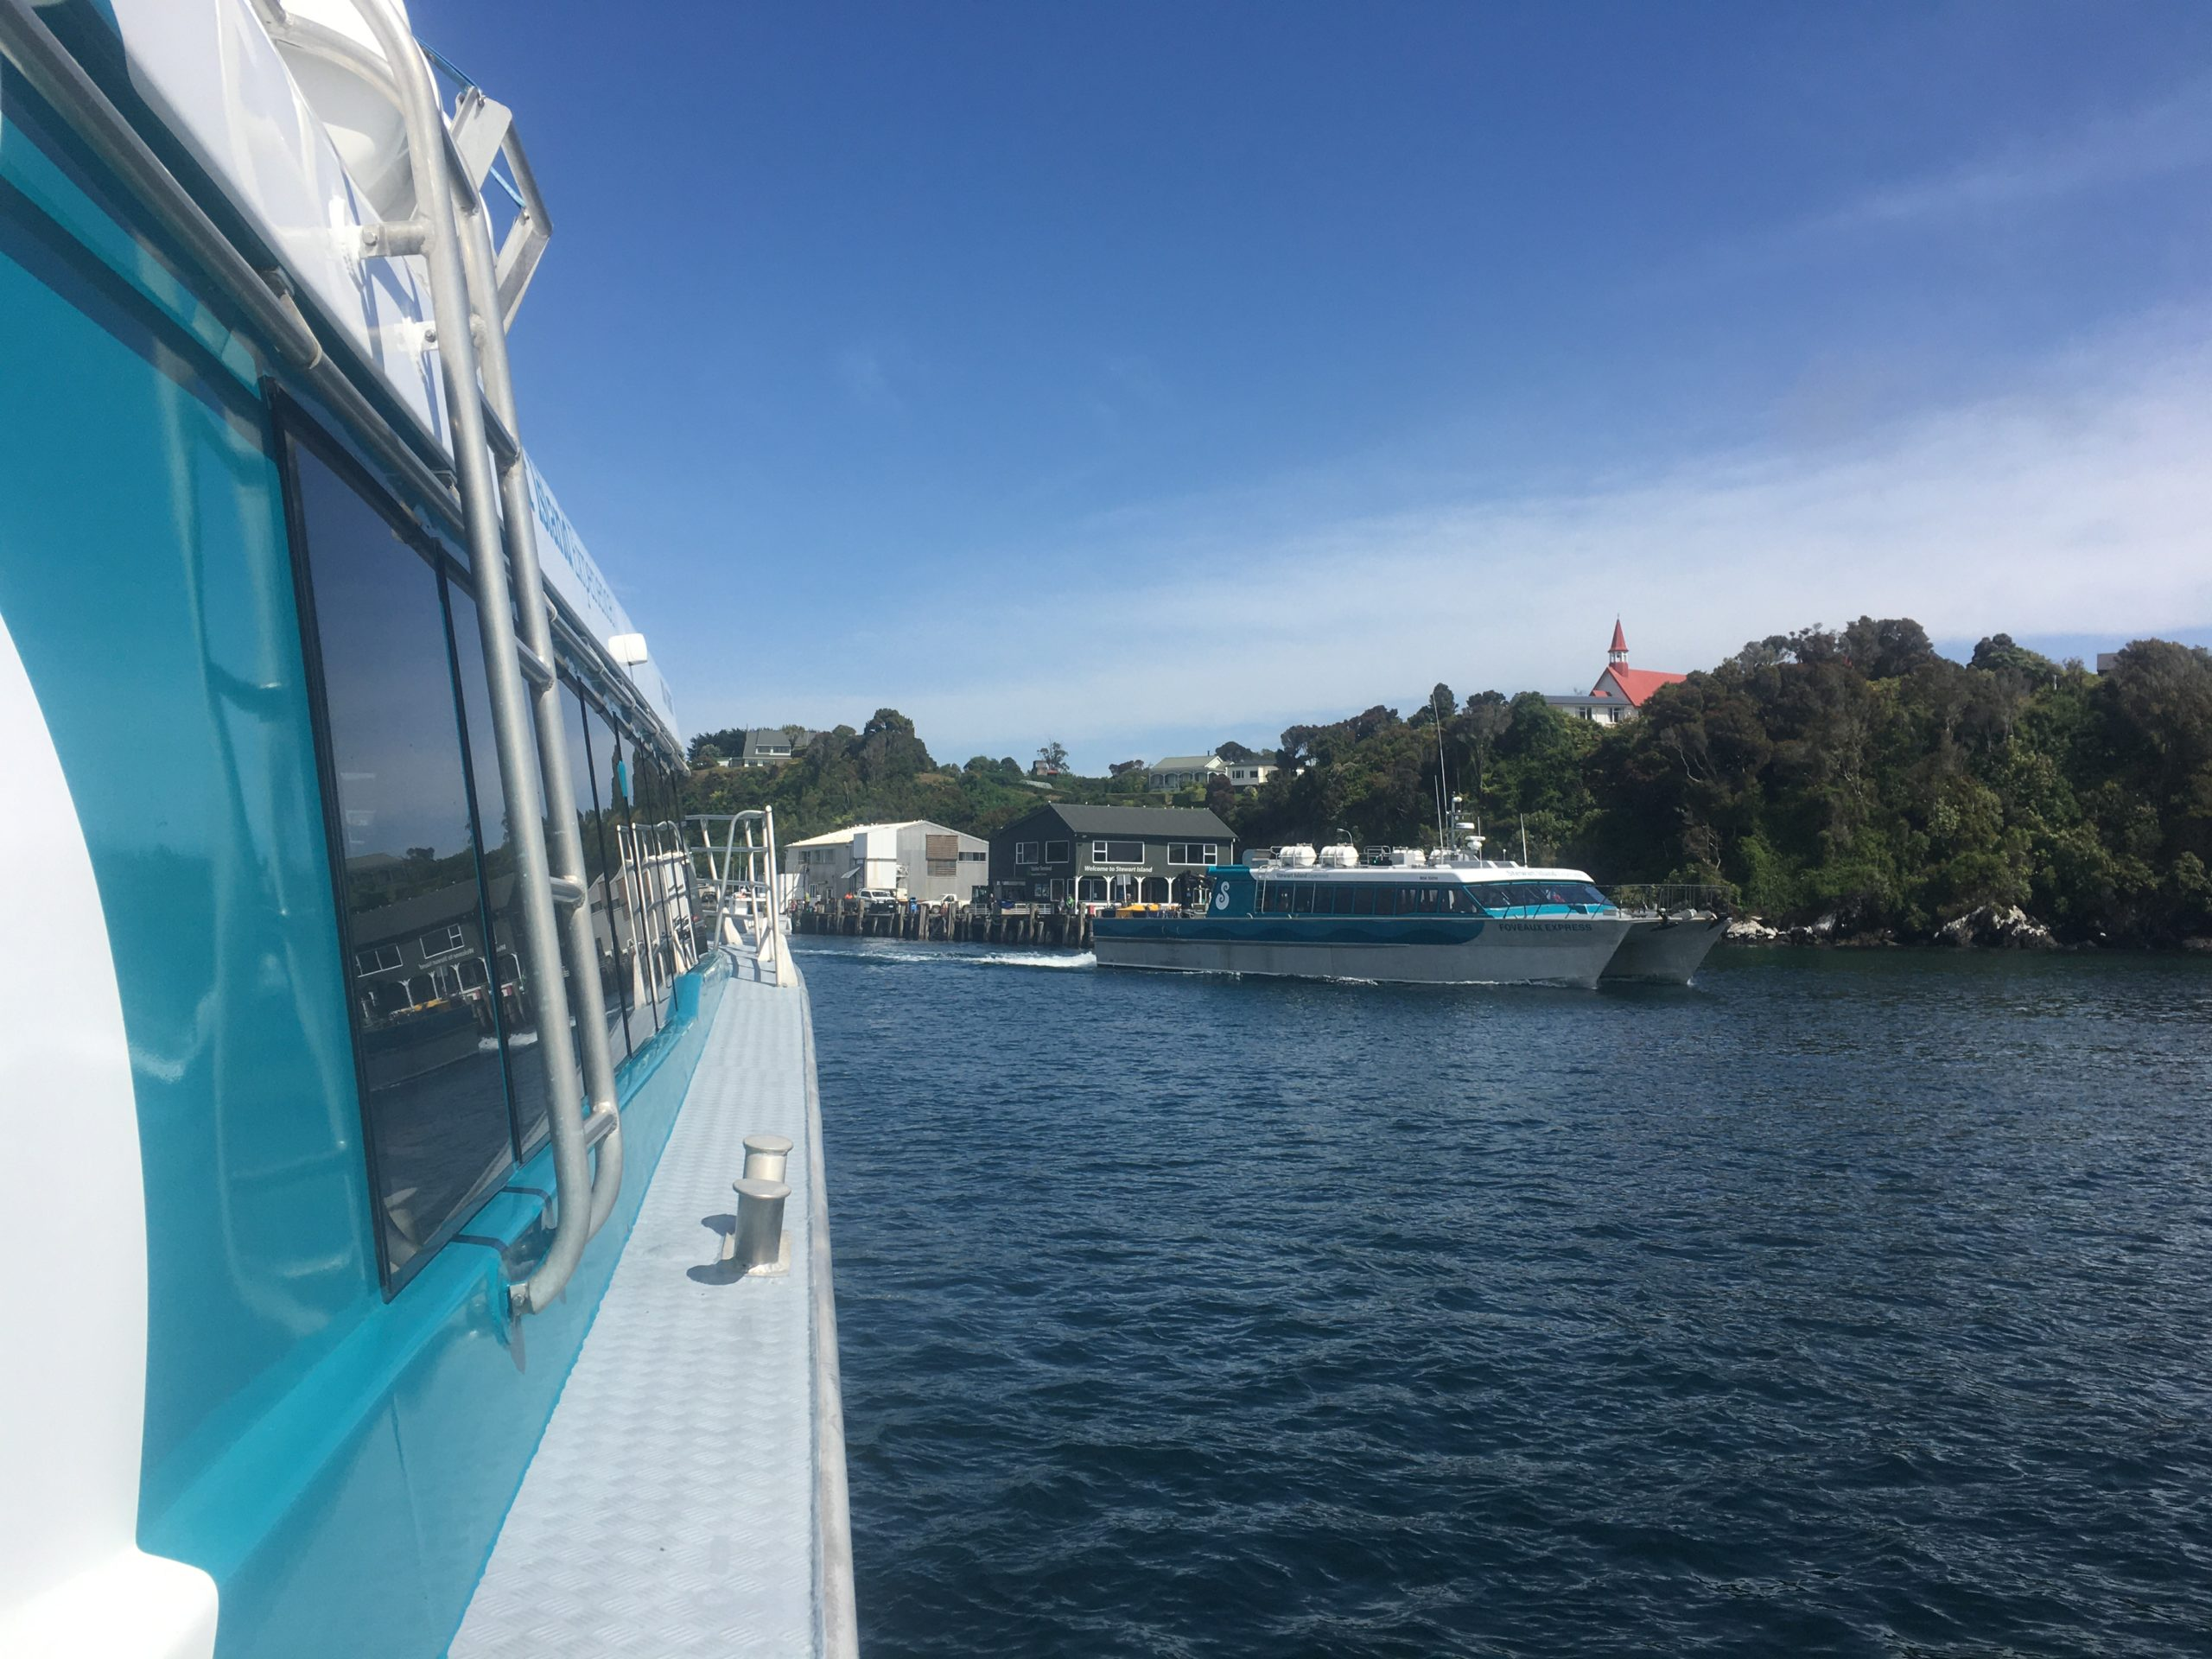 Heading into Oban harbour